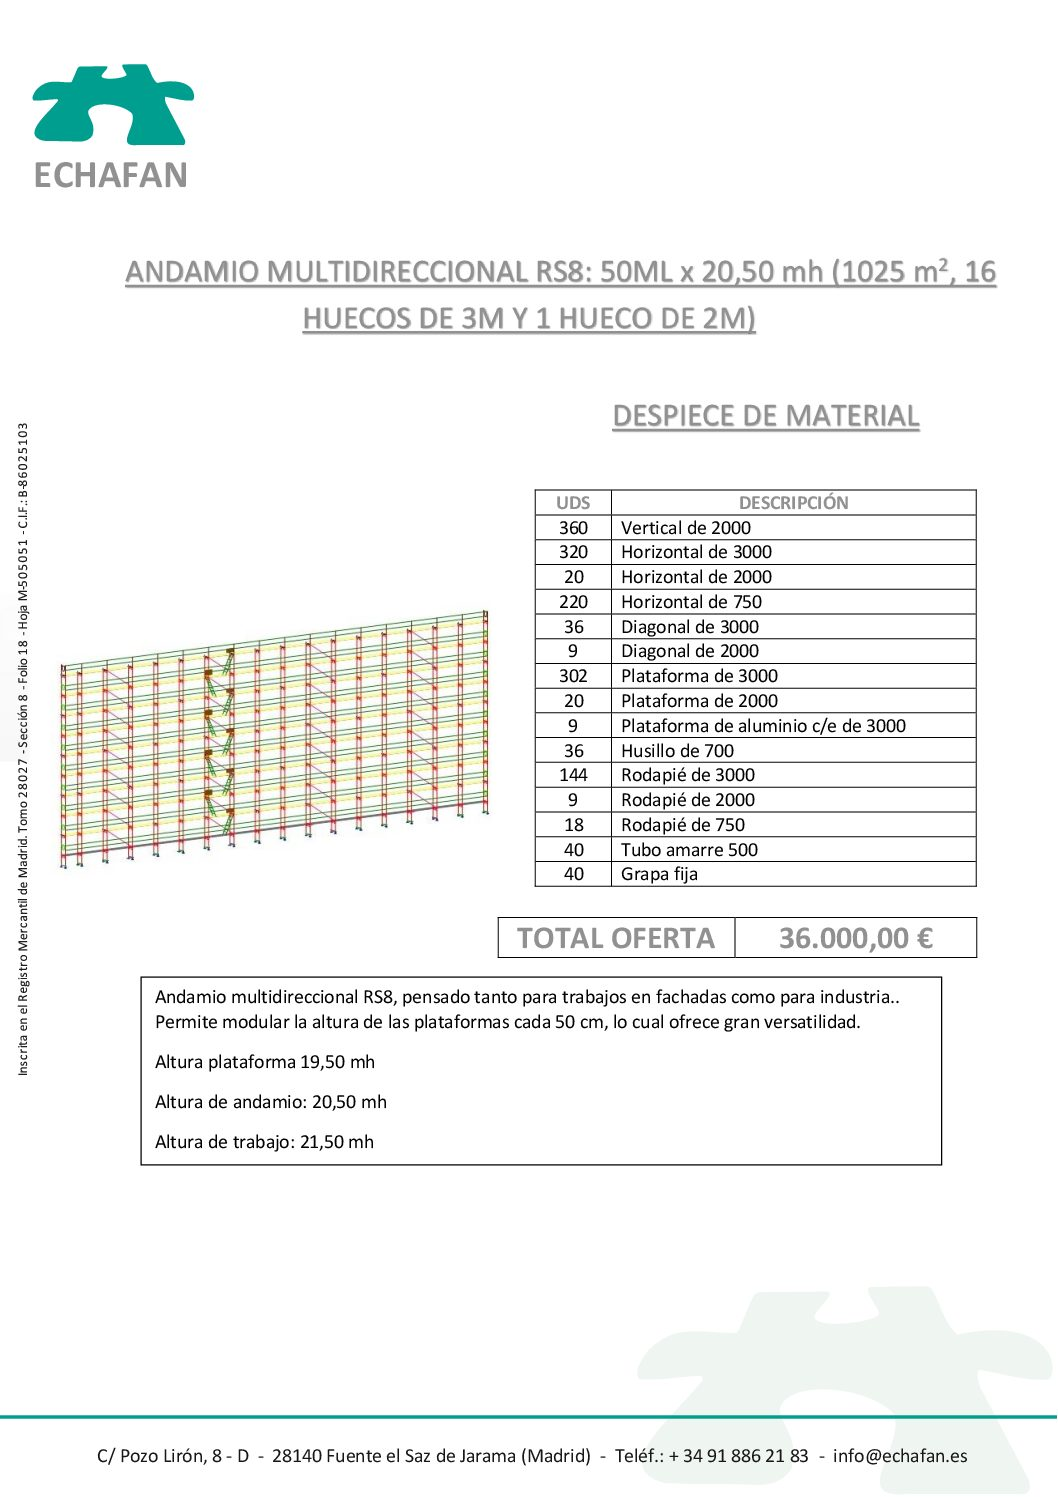 ANDAMIO MULTIDIRECCIONAL 50x20,50- 36